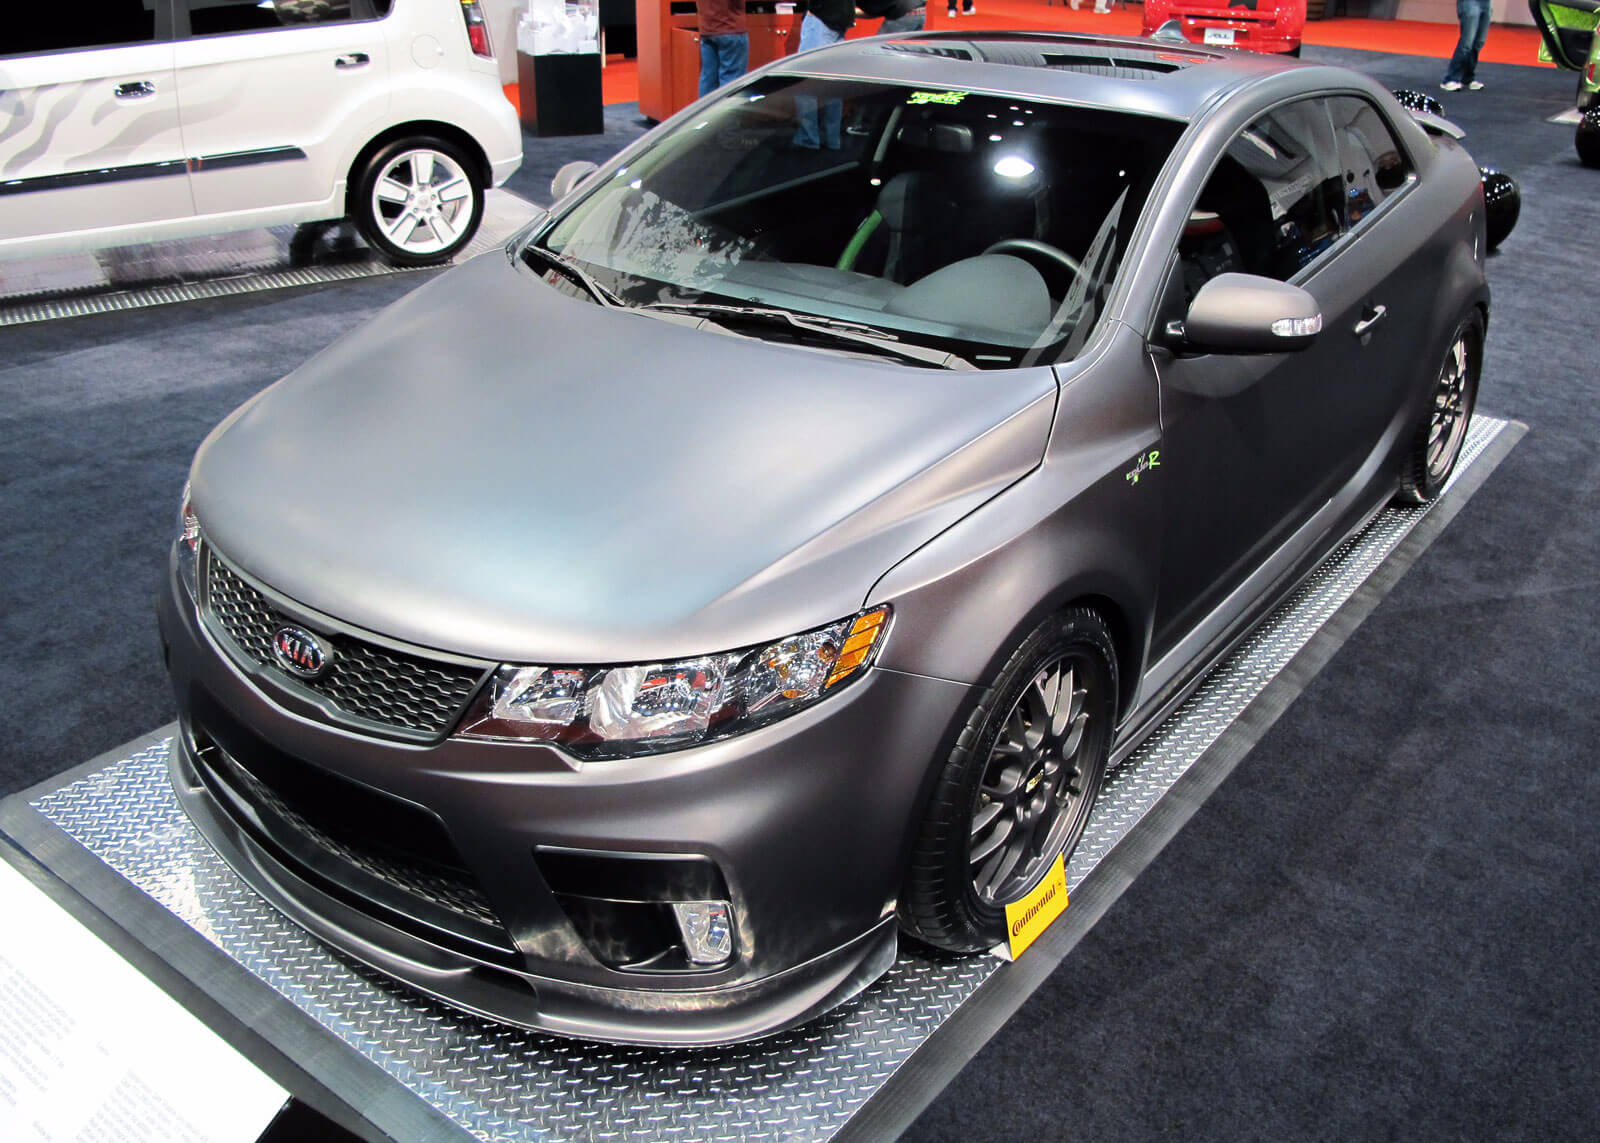 RaceDeck Pro at auto show